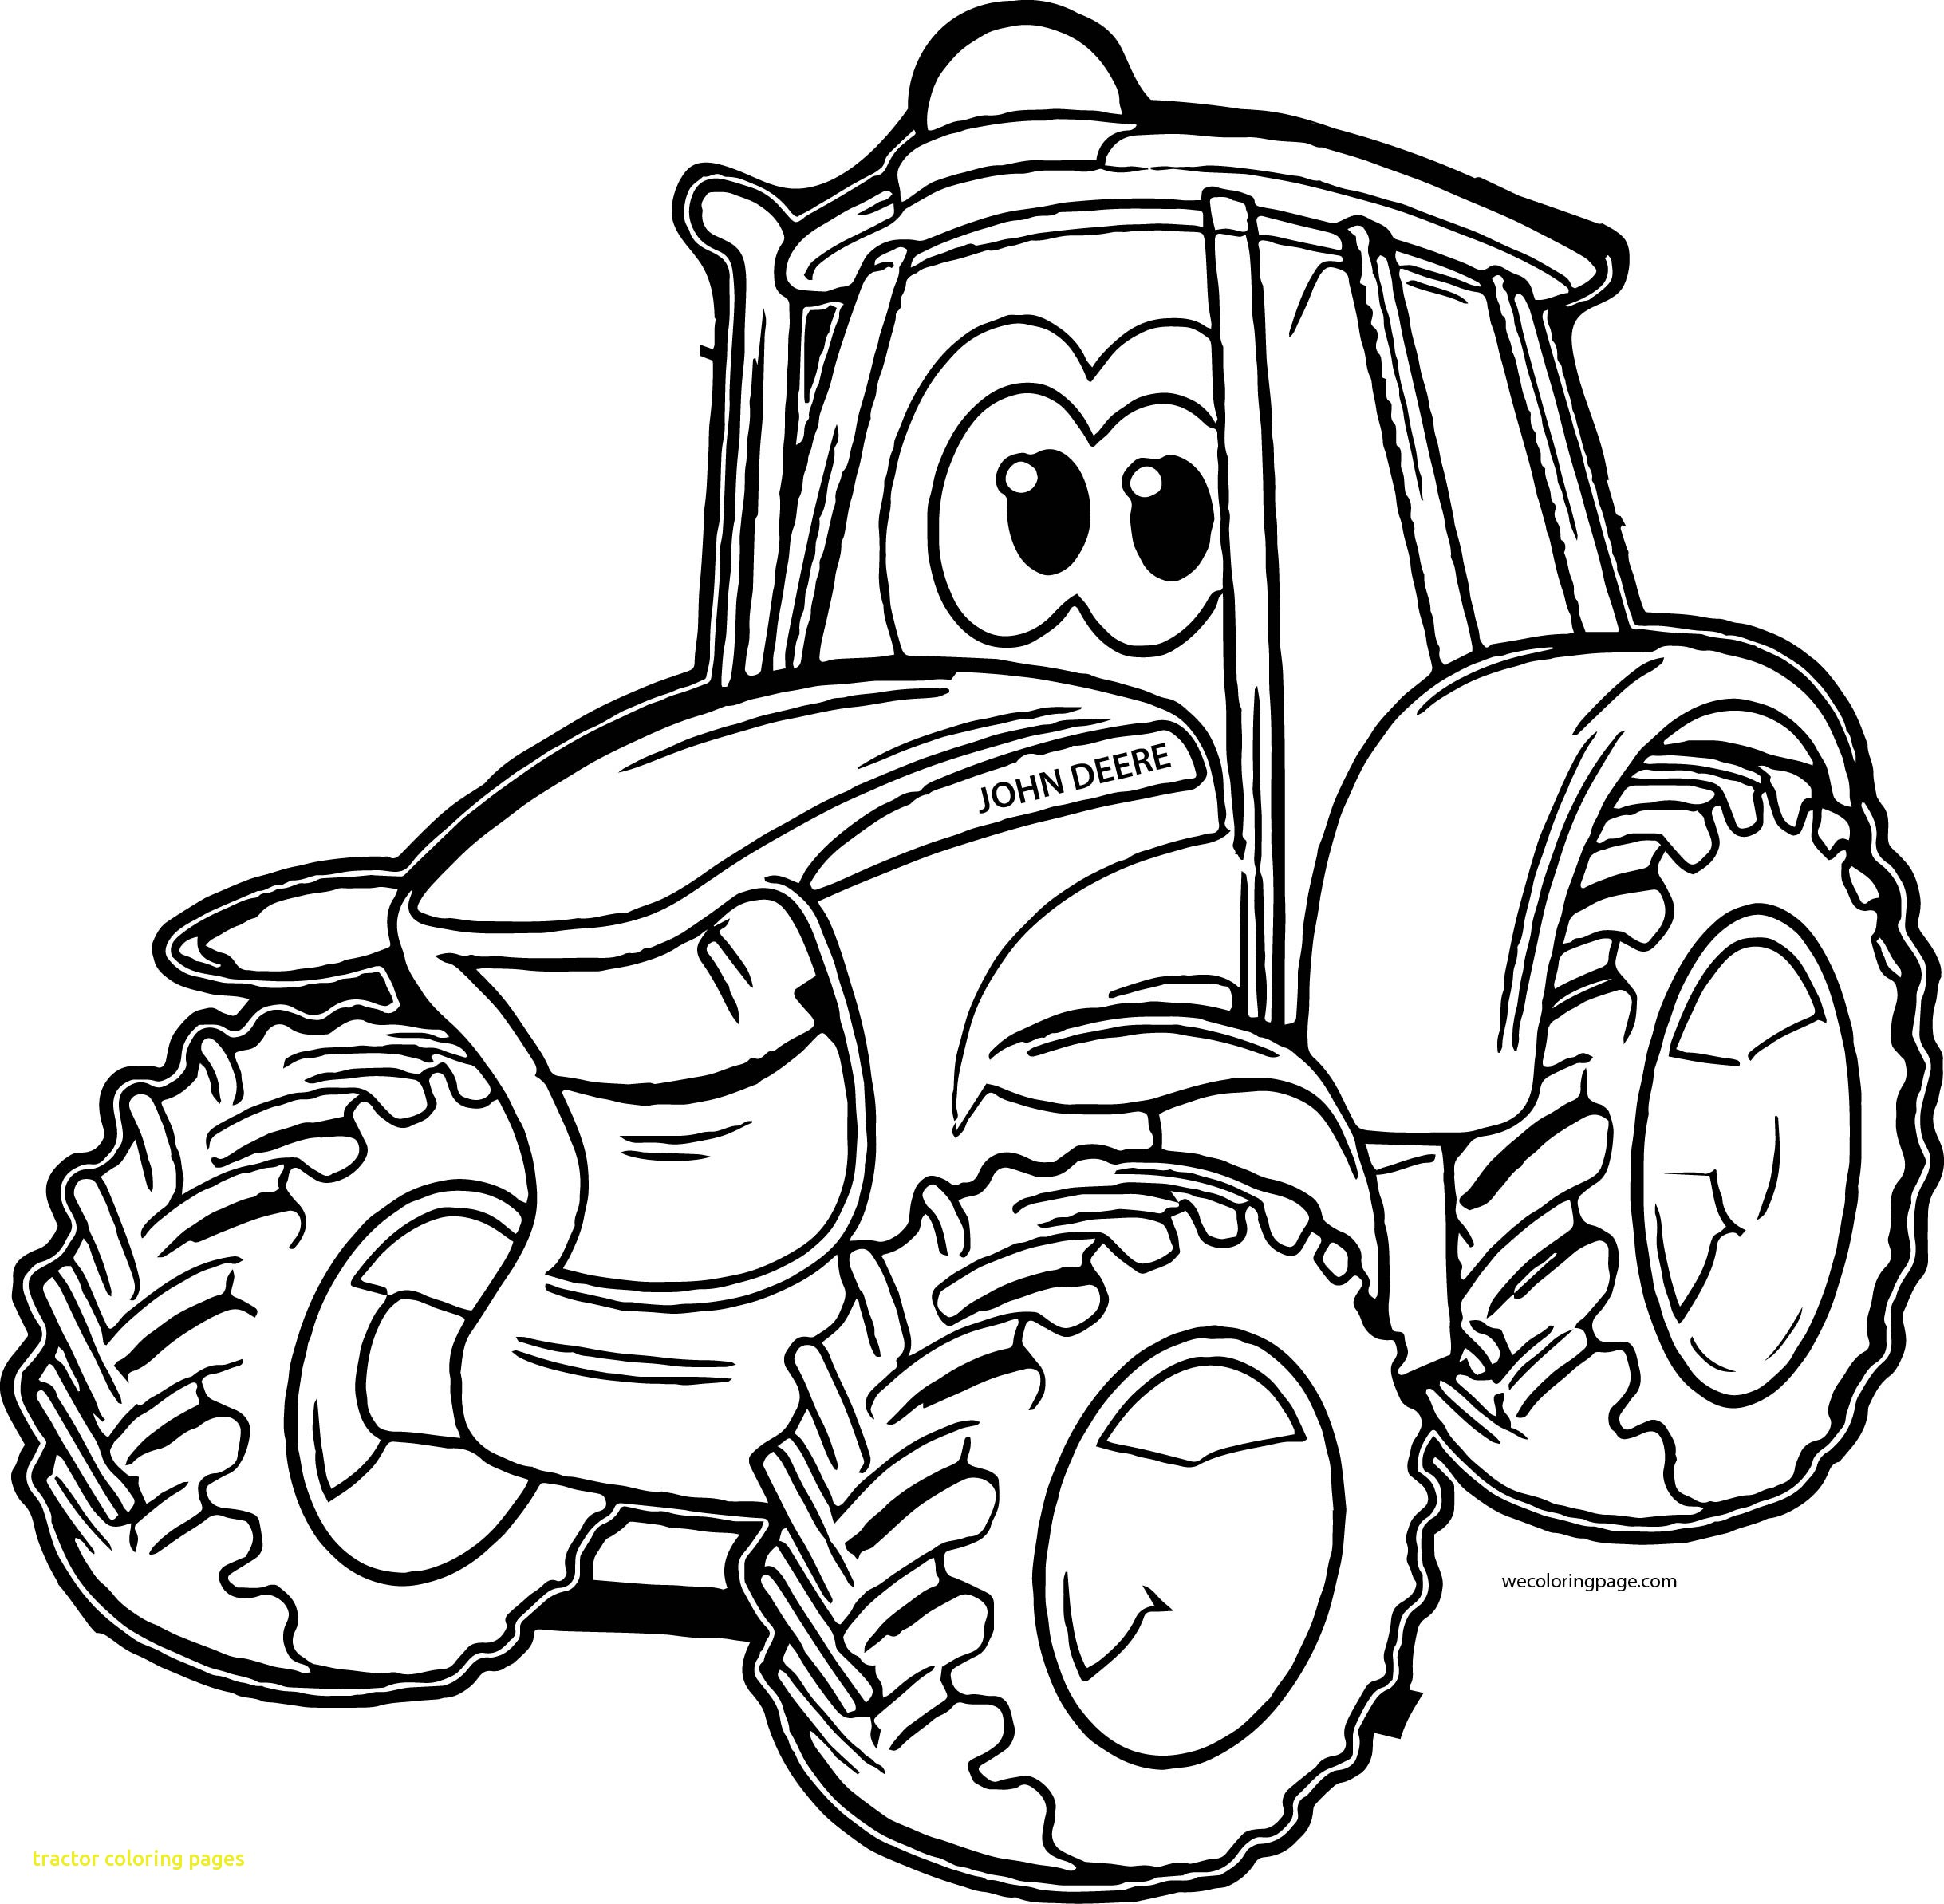 tractor color pages tractor coloring pages coloring pages to print pages tractor color